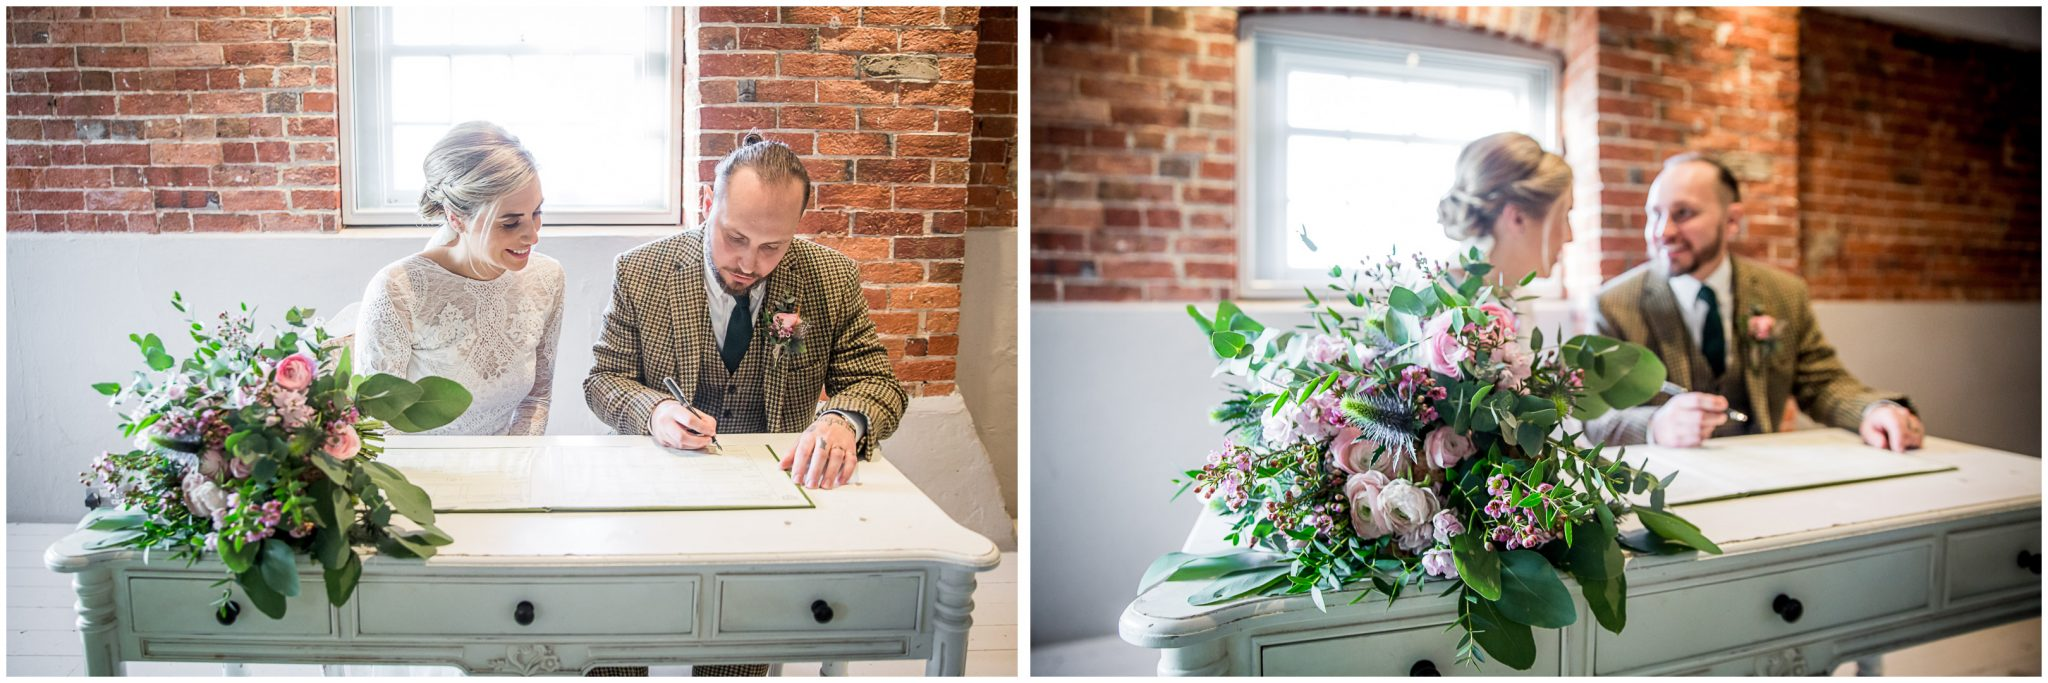 Signing the register at Sopley Mill wedding venue in the main ceremony room